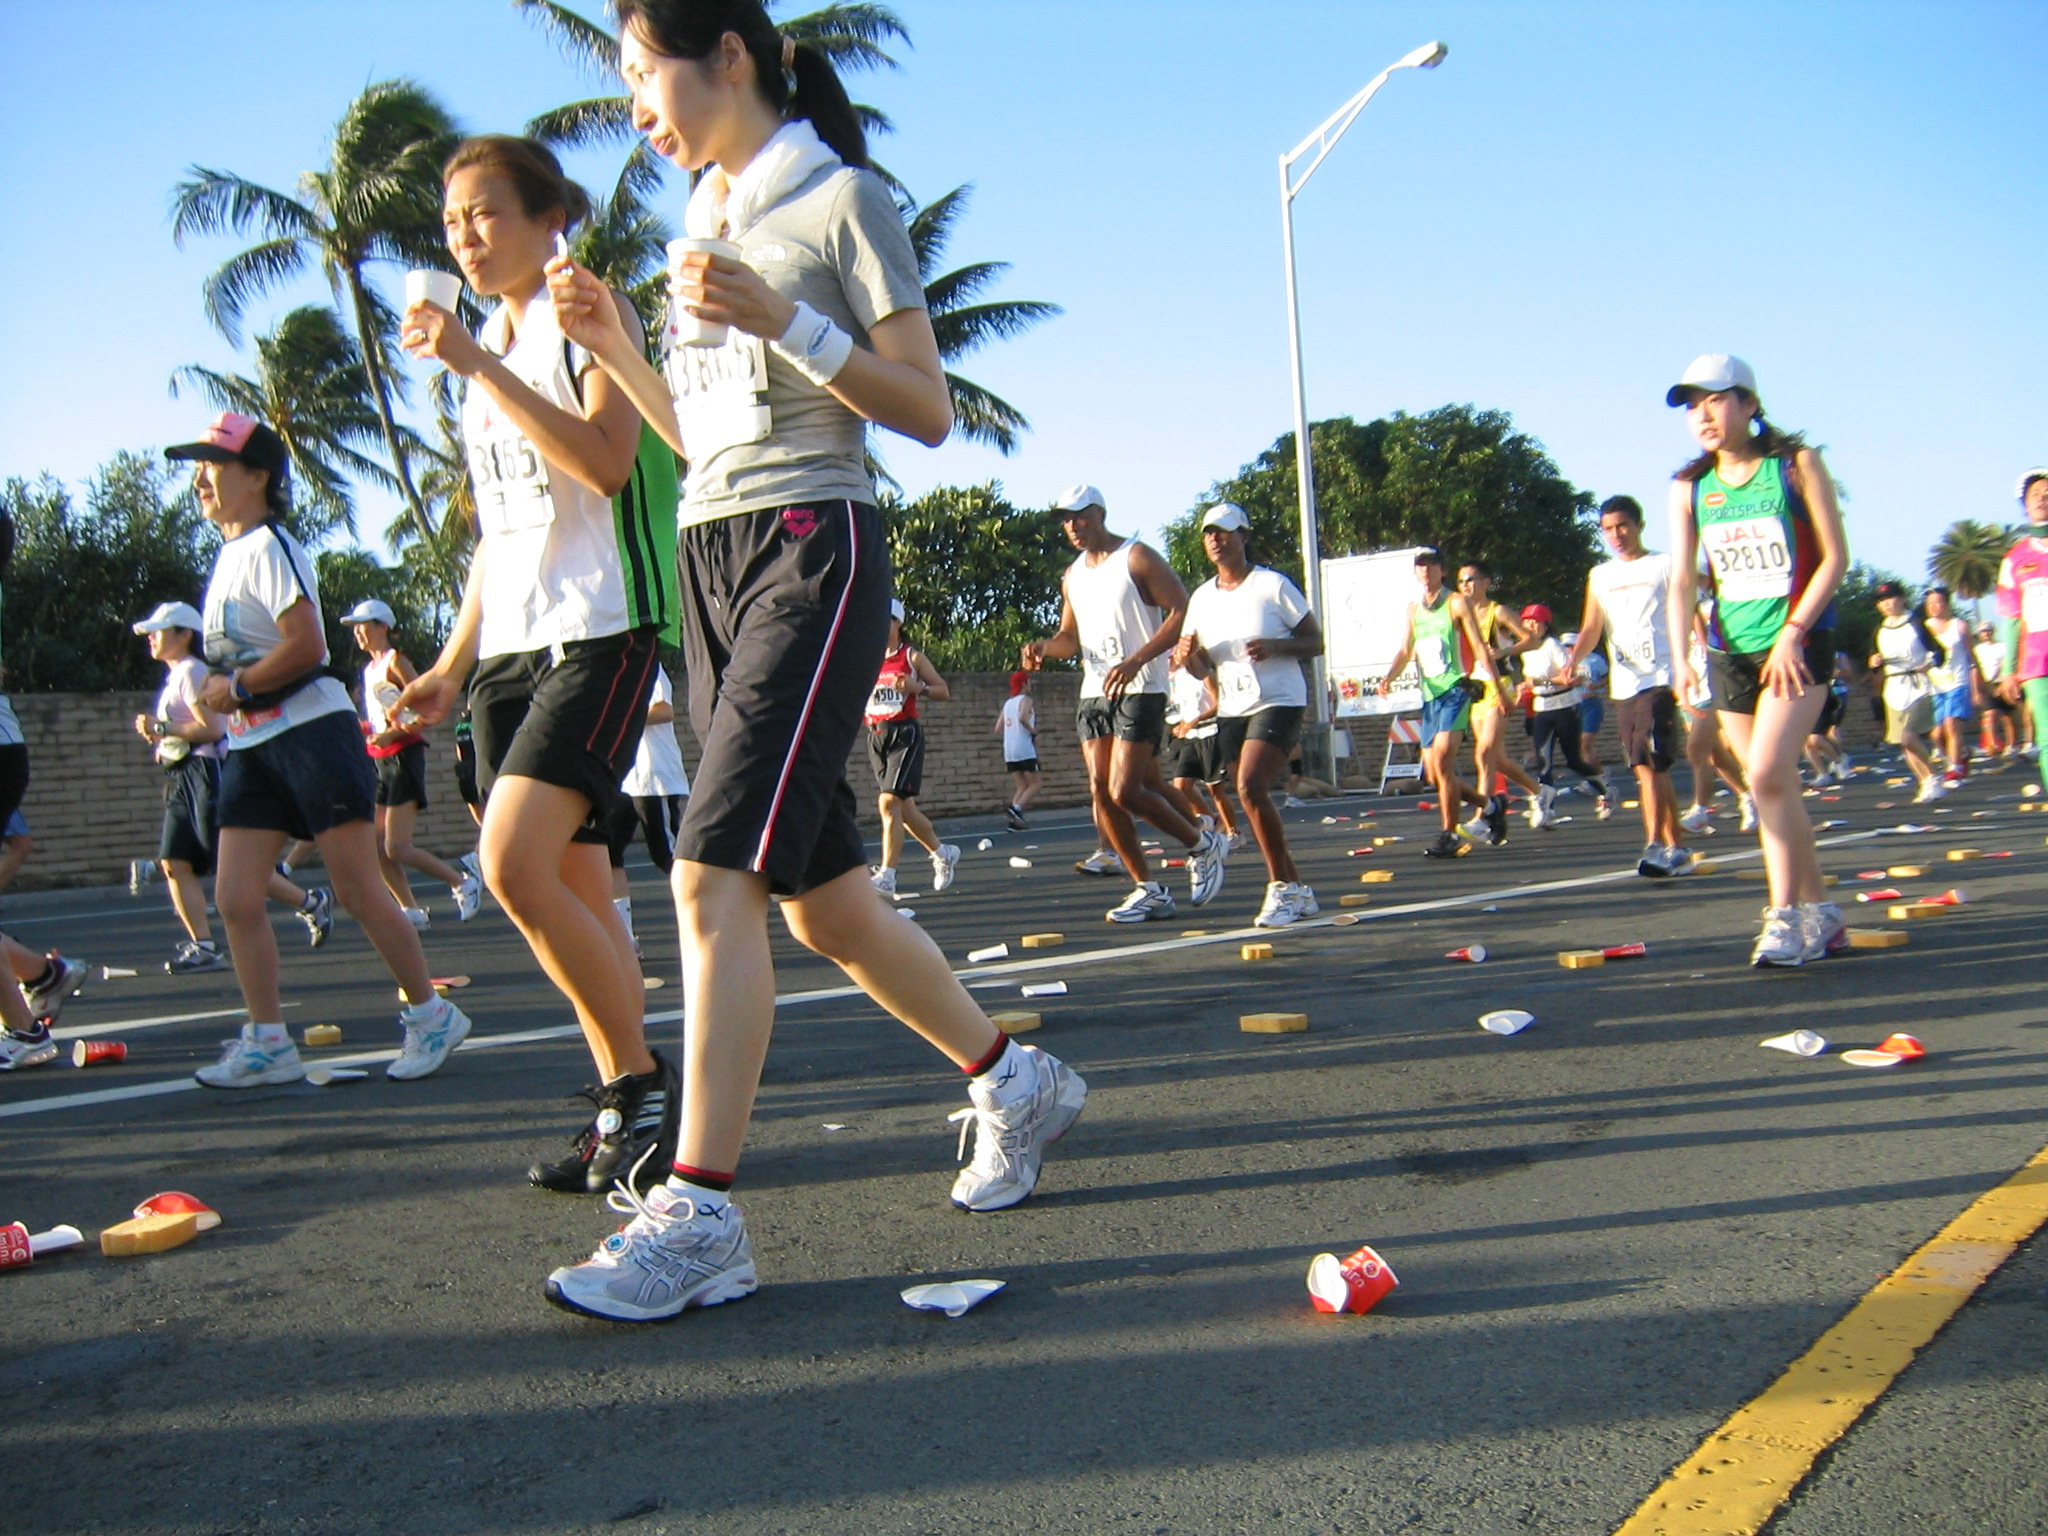 Honolulu Marathon Shmonolulu Shmarathon – If You Can Walk, You Can Roll